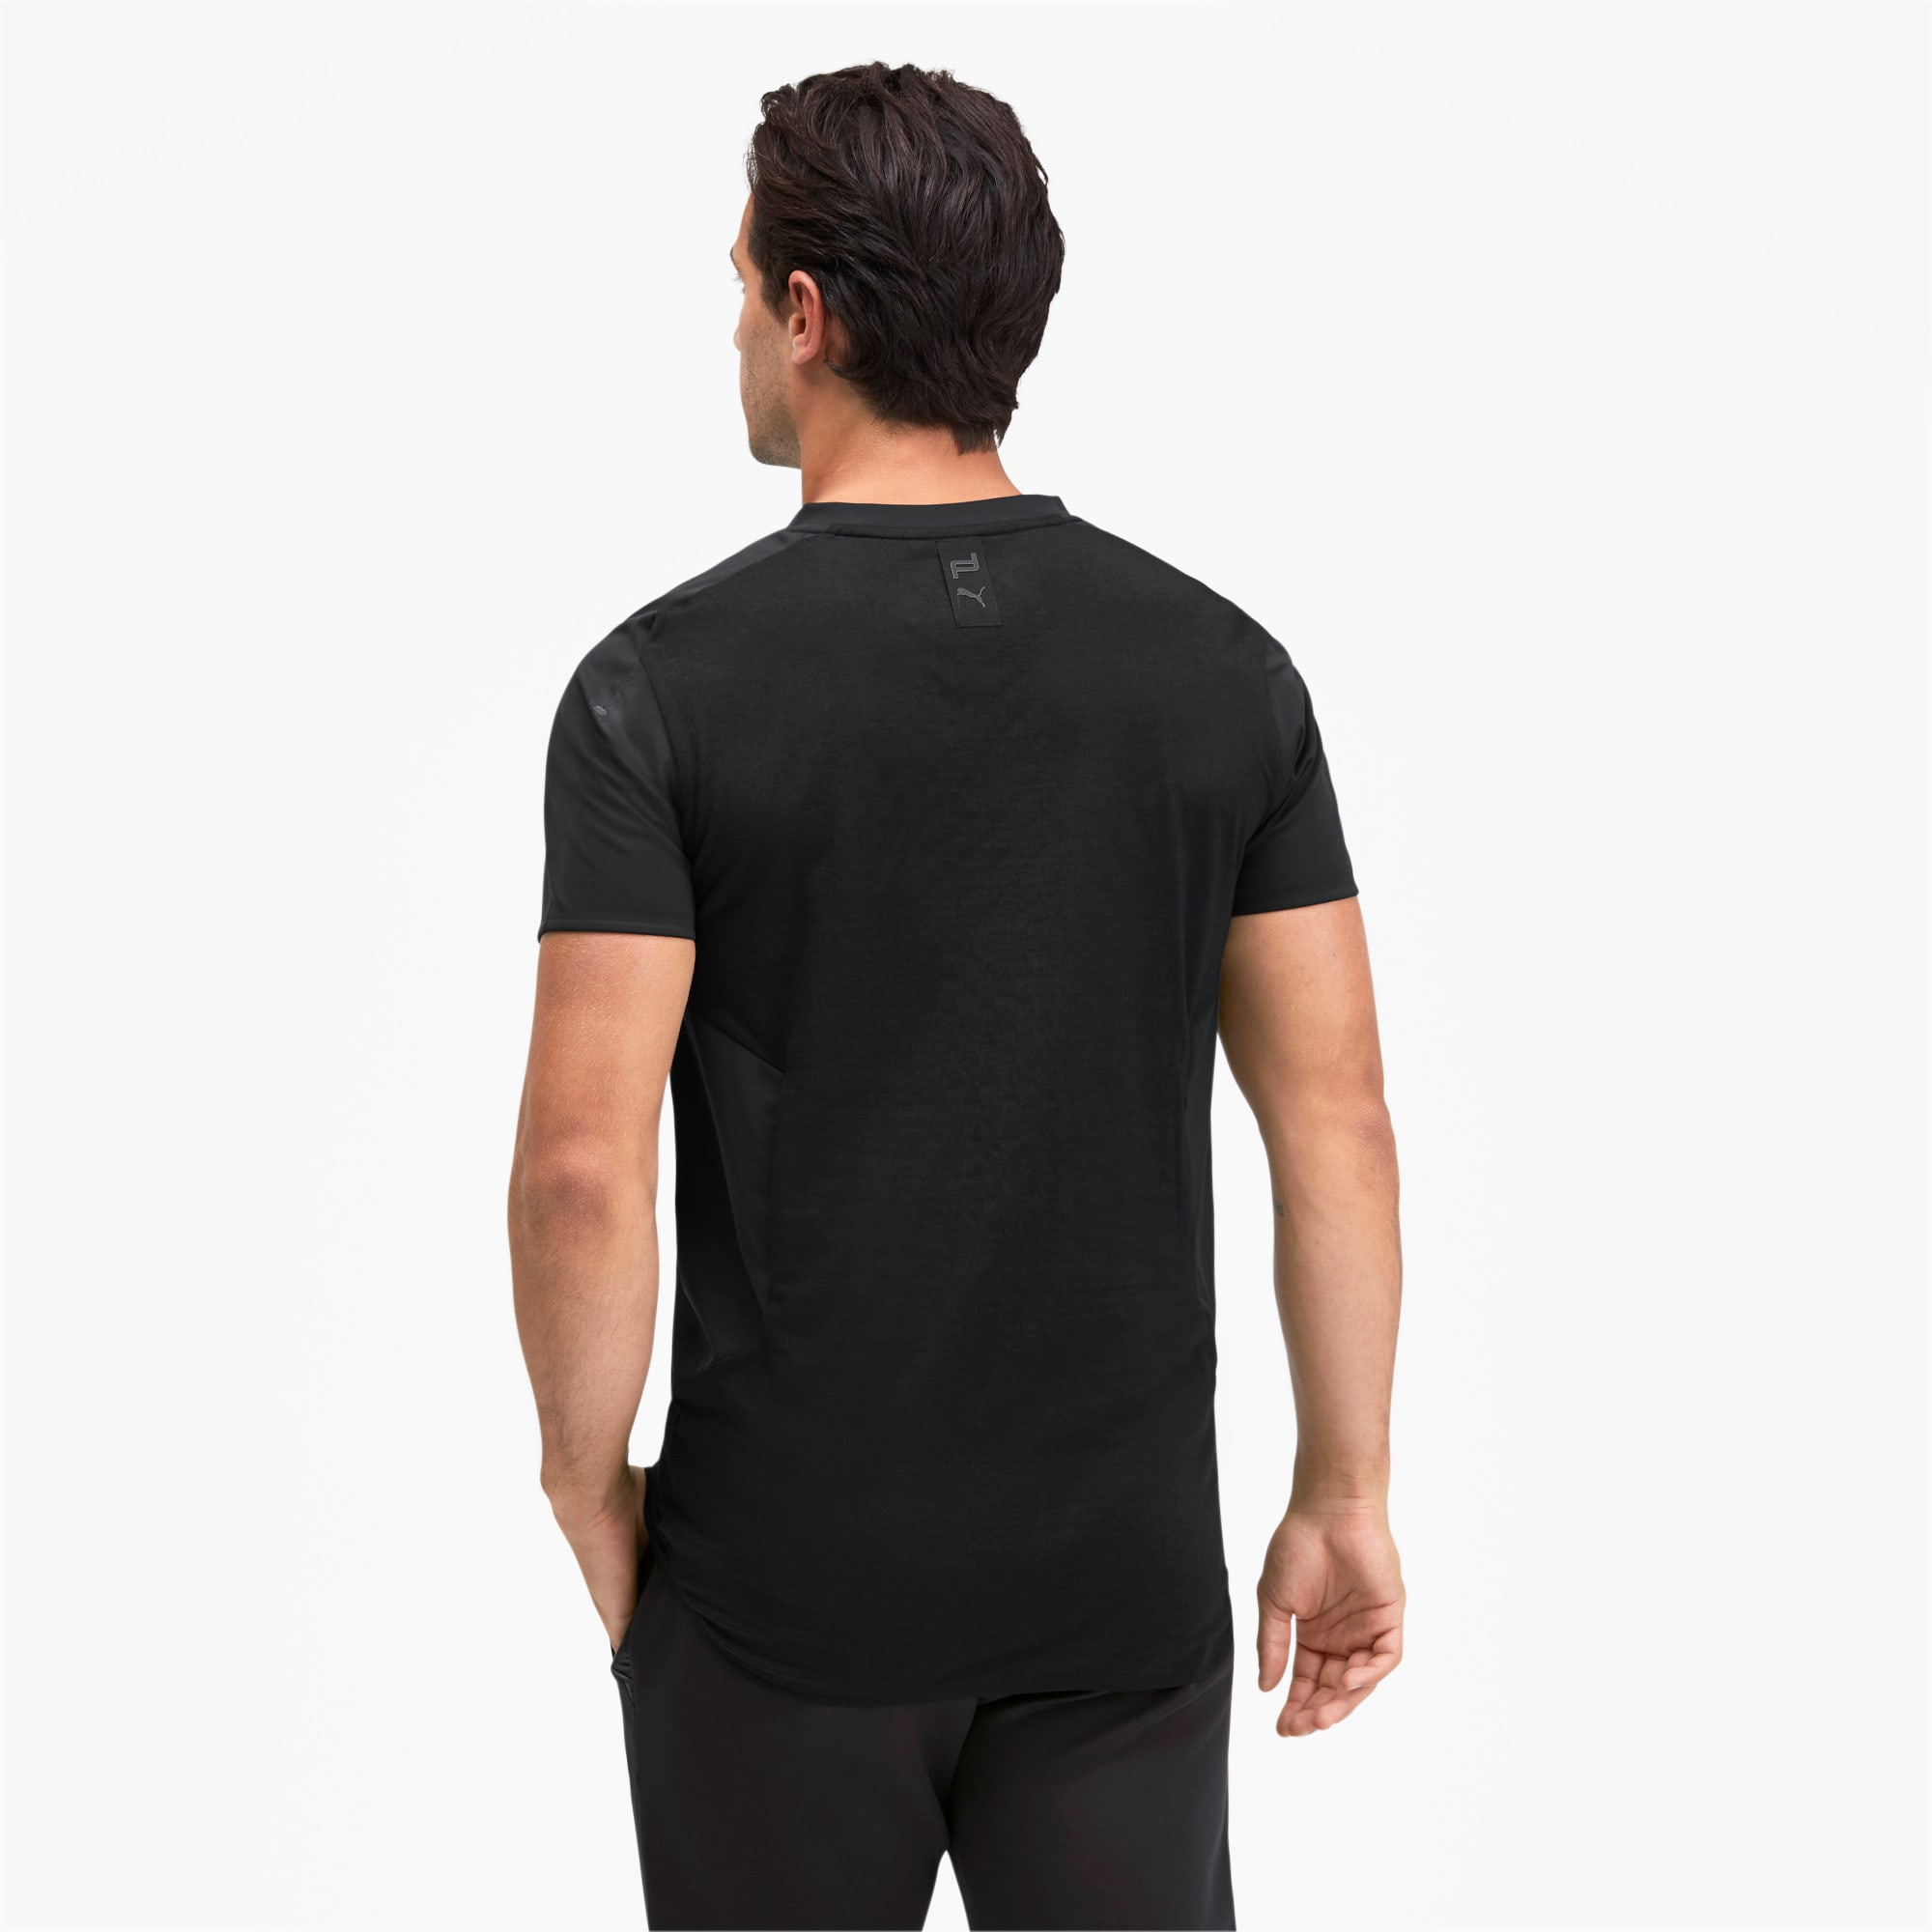 Thumbnail 2 of Porsche Design RCT Men's Tee, Jet Black, medium